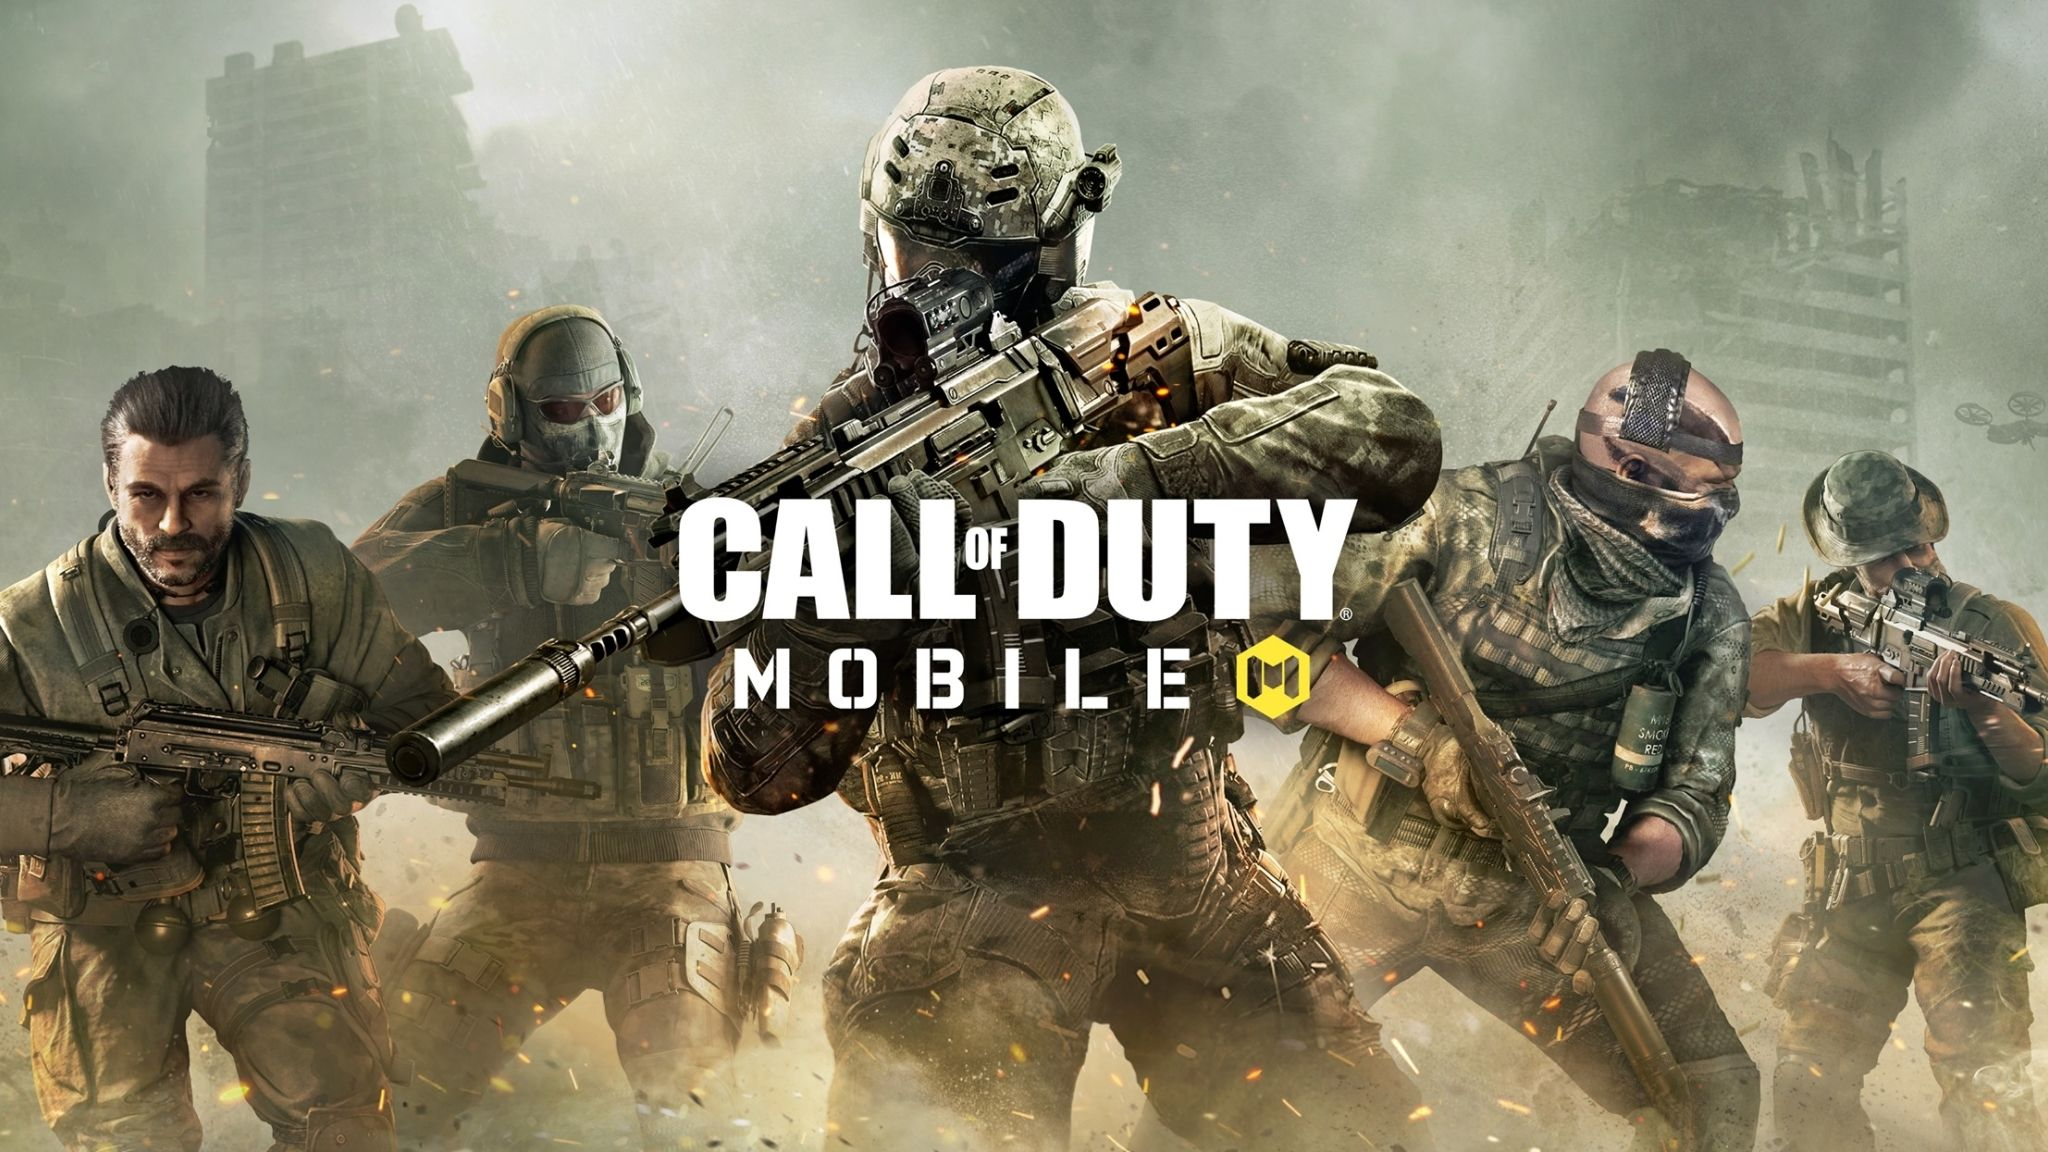 Call of Duty 2048X1152 Wallpapers   Top Call of Duty 2048x1152